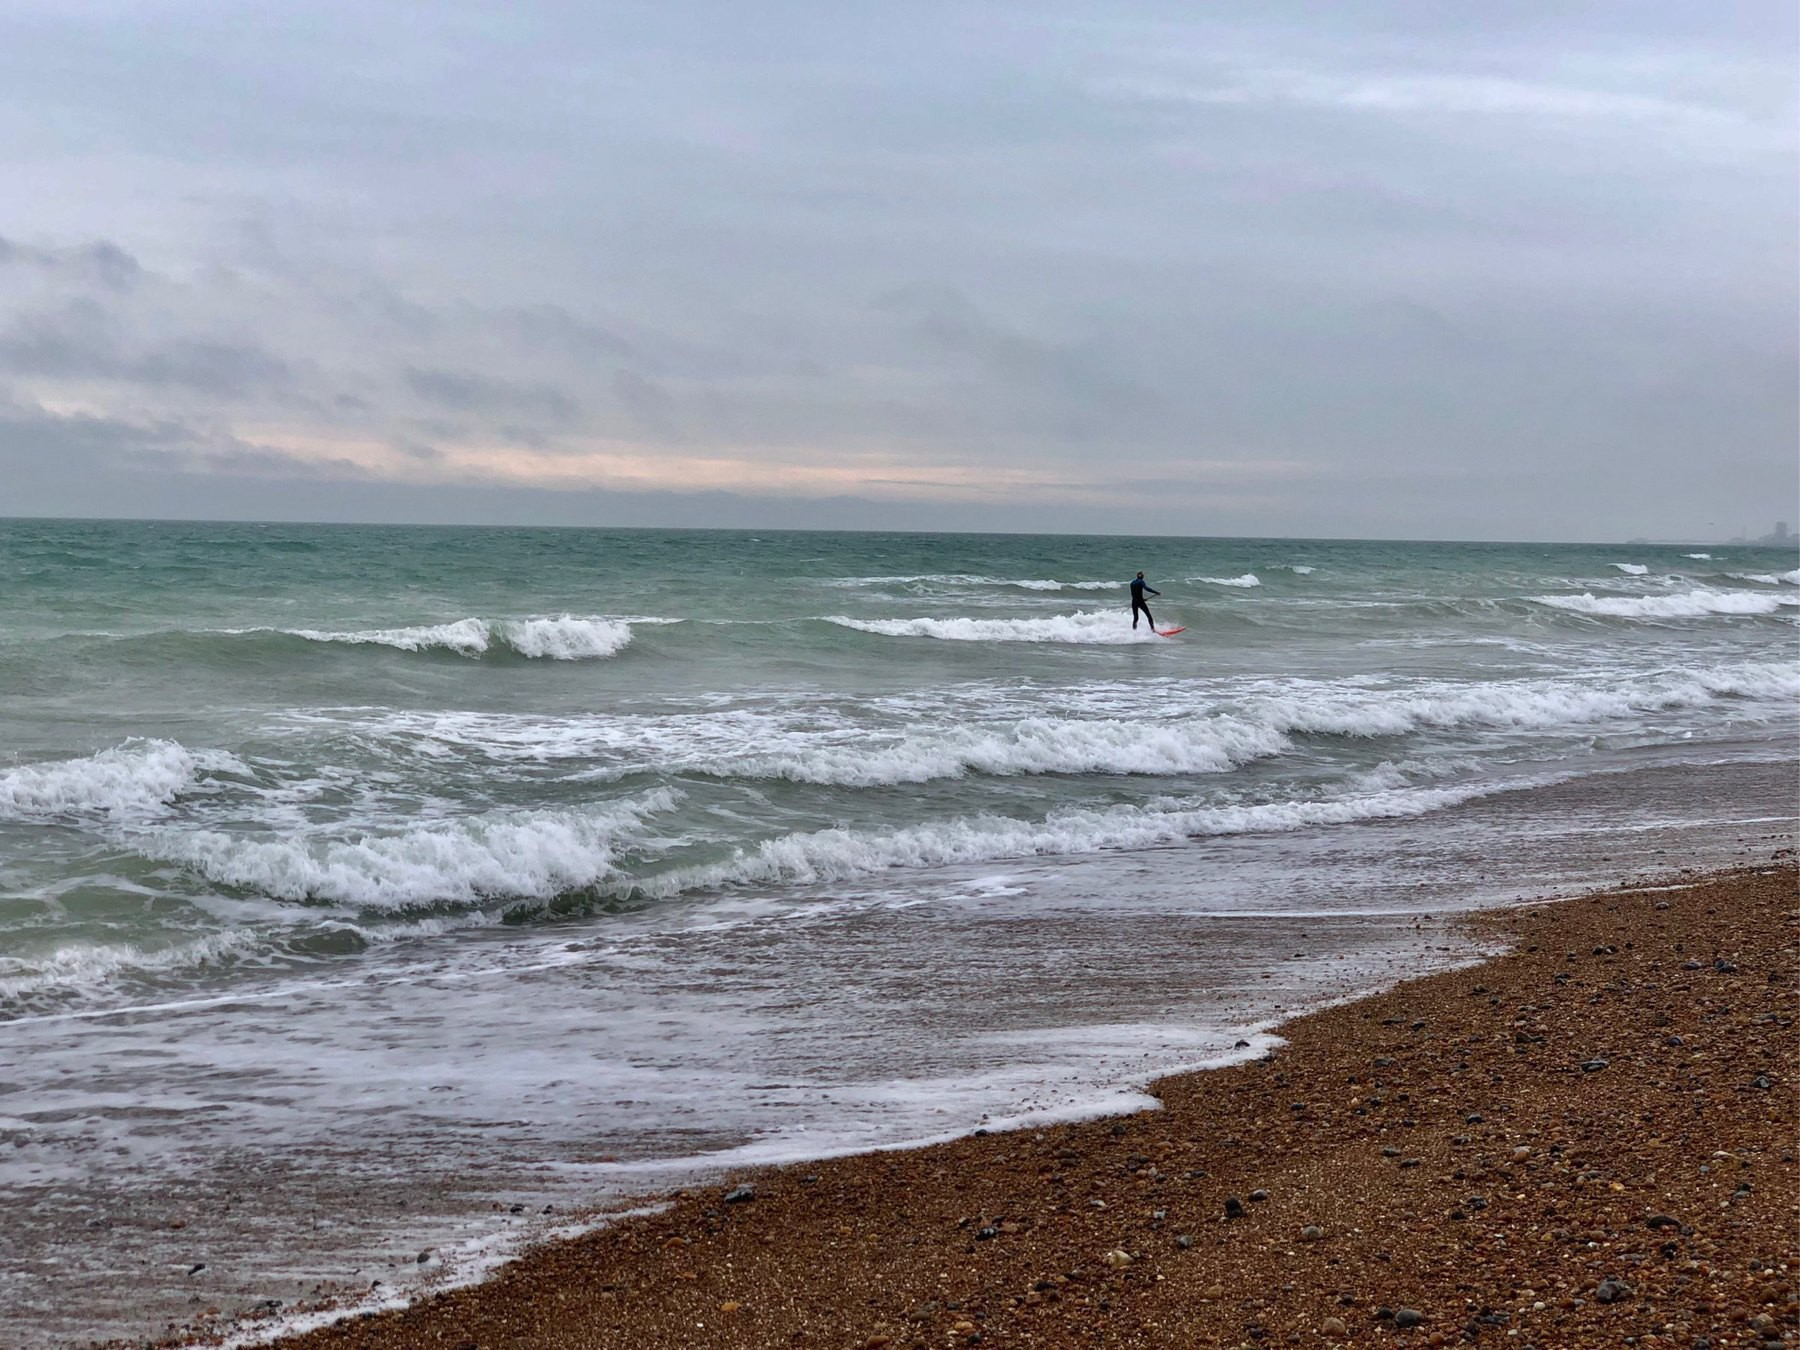 A surfer in the sea off Shoreham Beach.